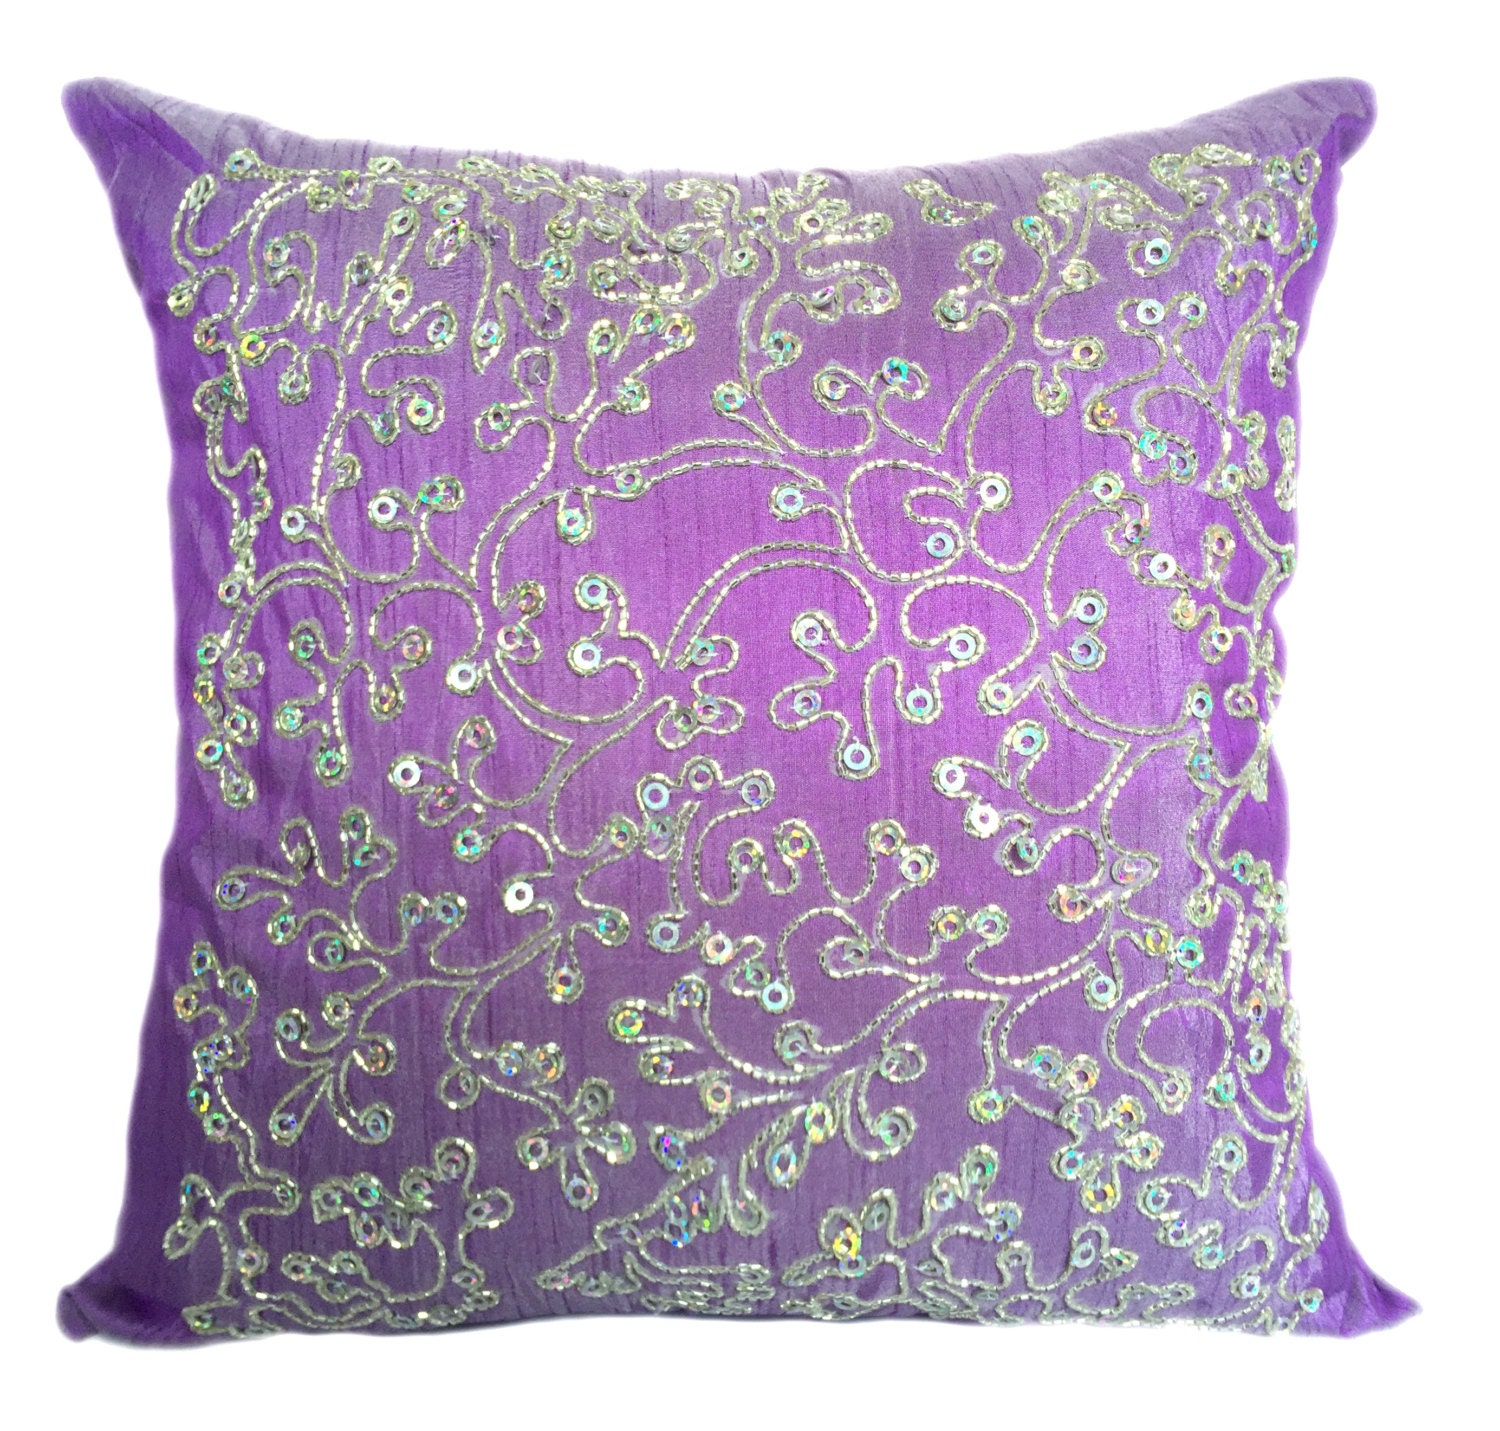 Violet Pillow Cover Violet Silver Decorative Pillow Cover